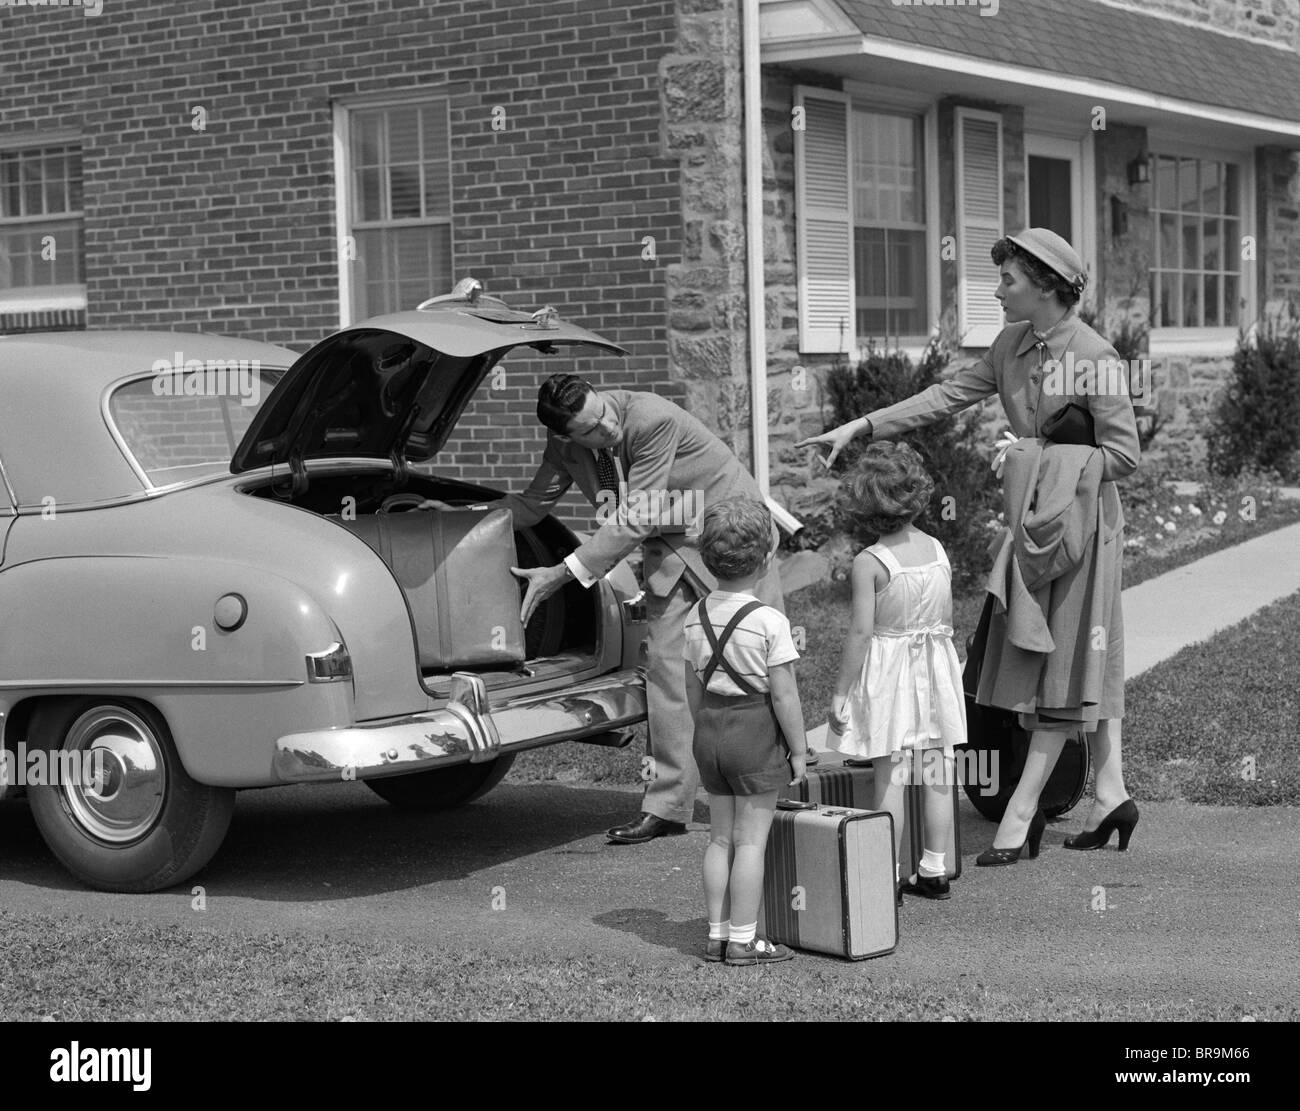 1950s FAMILY PUTTING LUGGAGE SUITCASES INTO TRUNK OF CAR - Stock Image